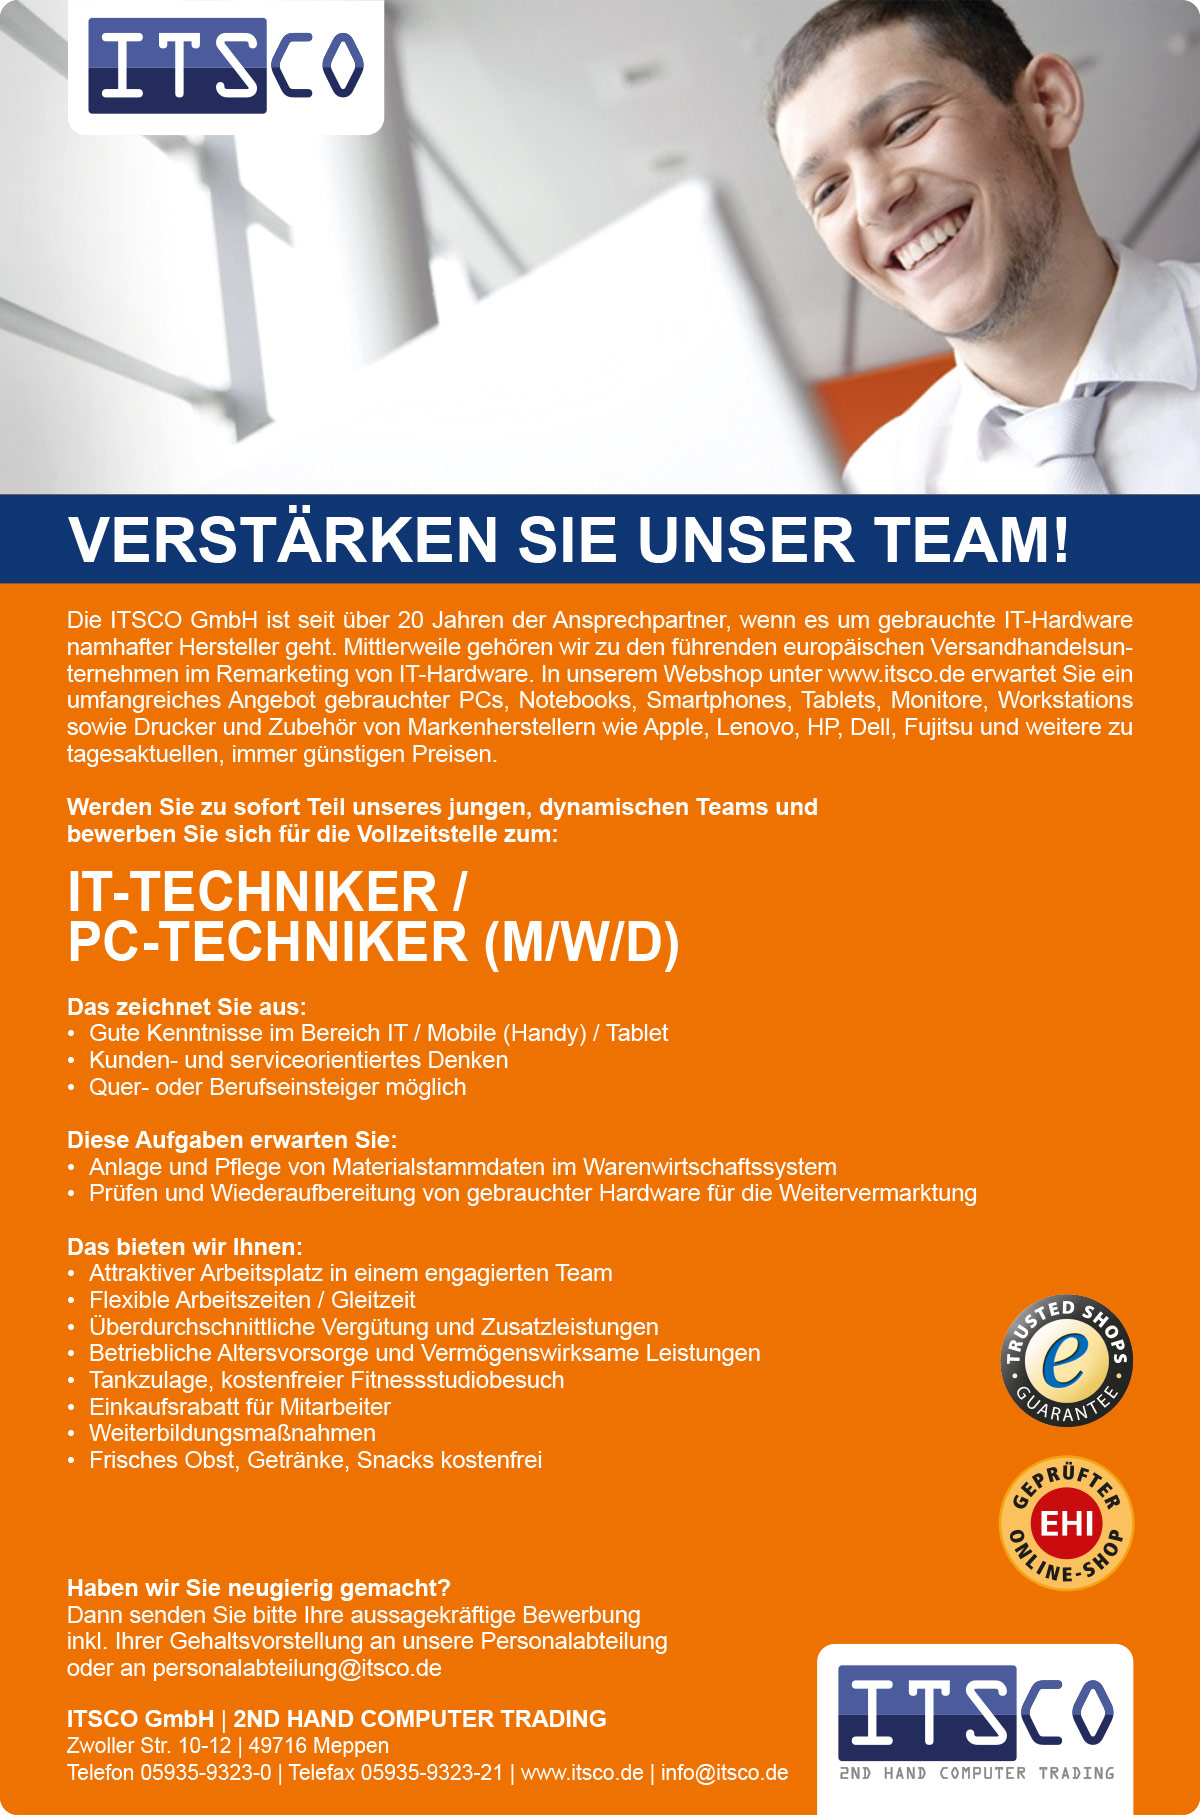 IT-Techniker / PC-Techniker (m/w/d)